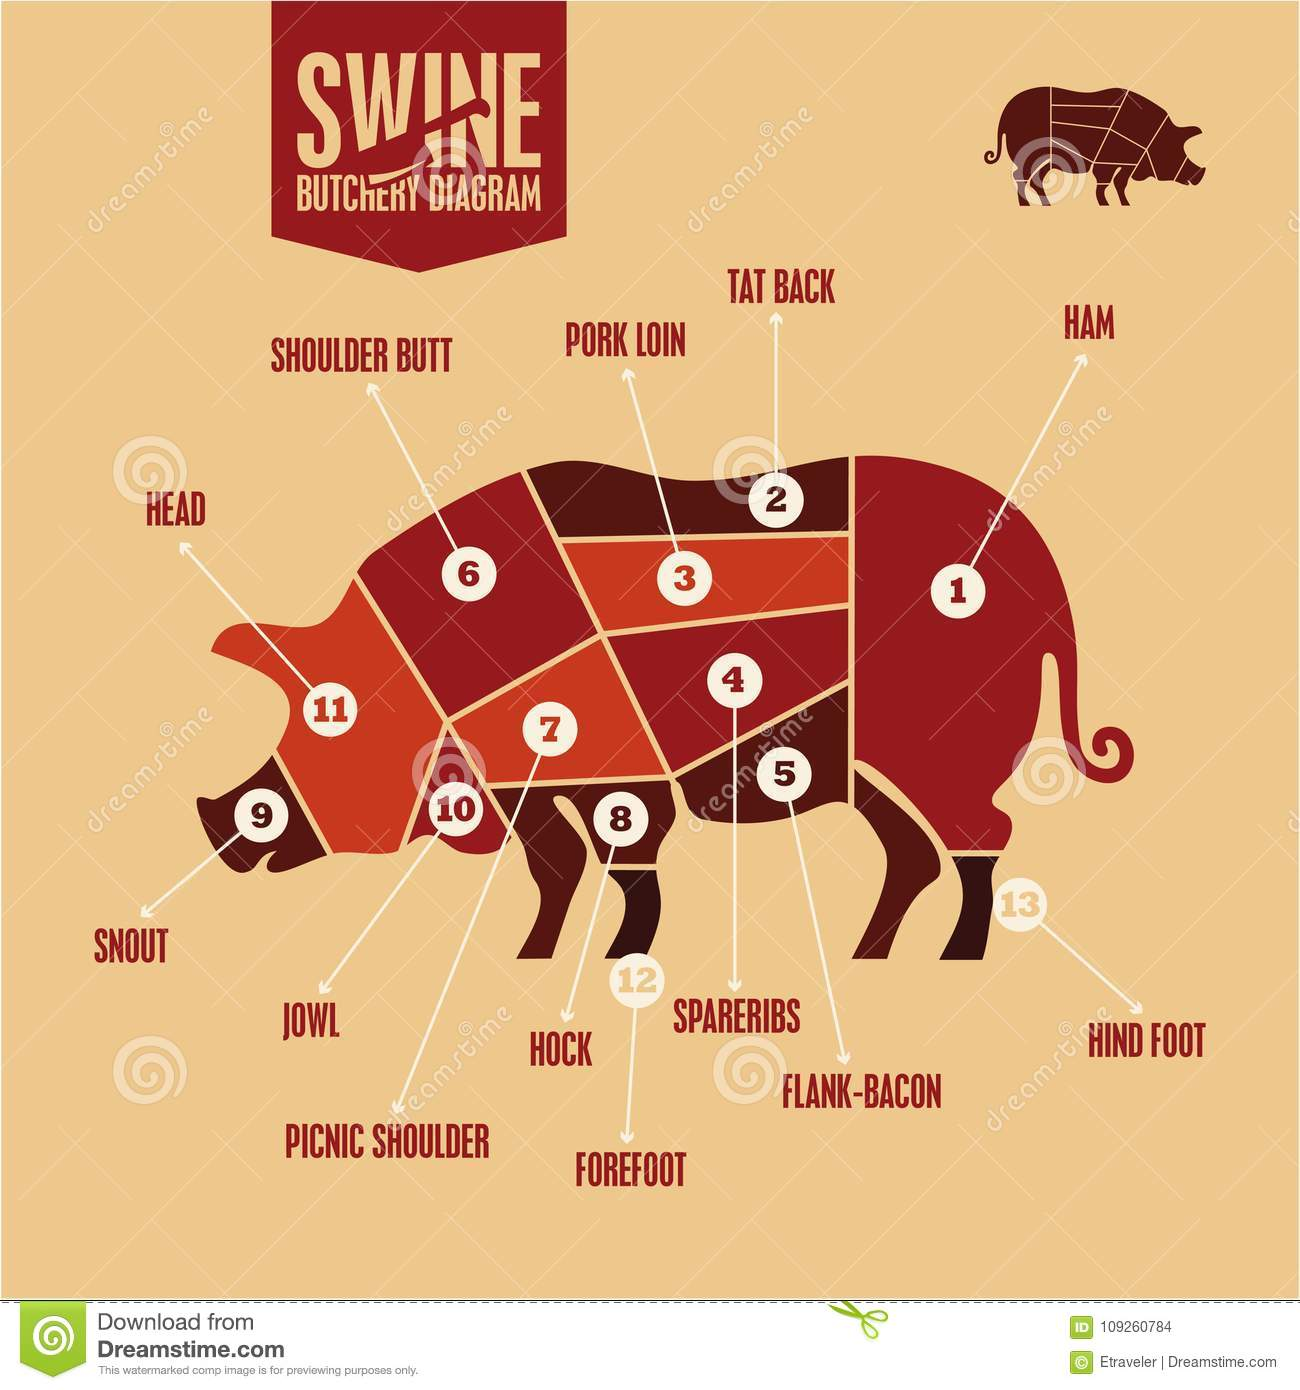 hight resolution of cuts of pork in color swine butchery diagram barbecue pork meatcuts of pork in color